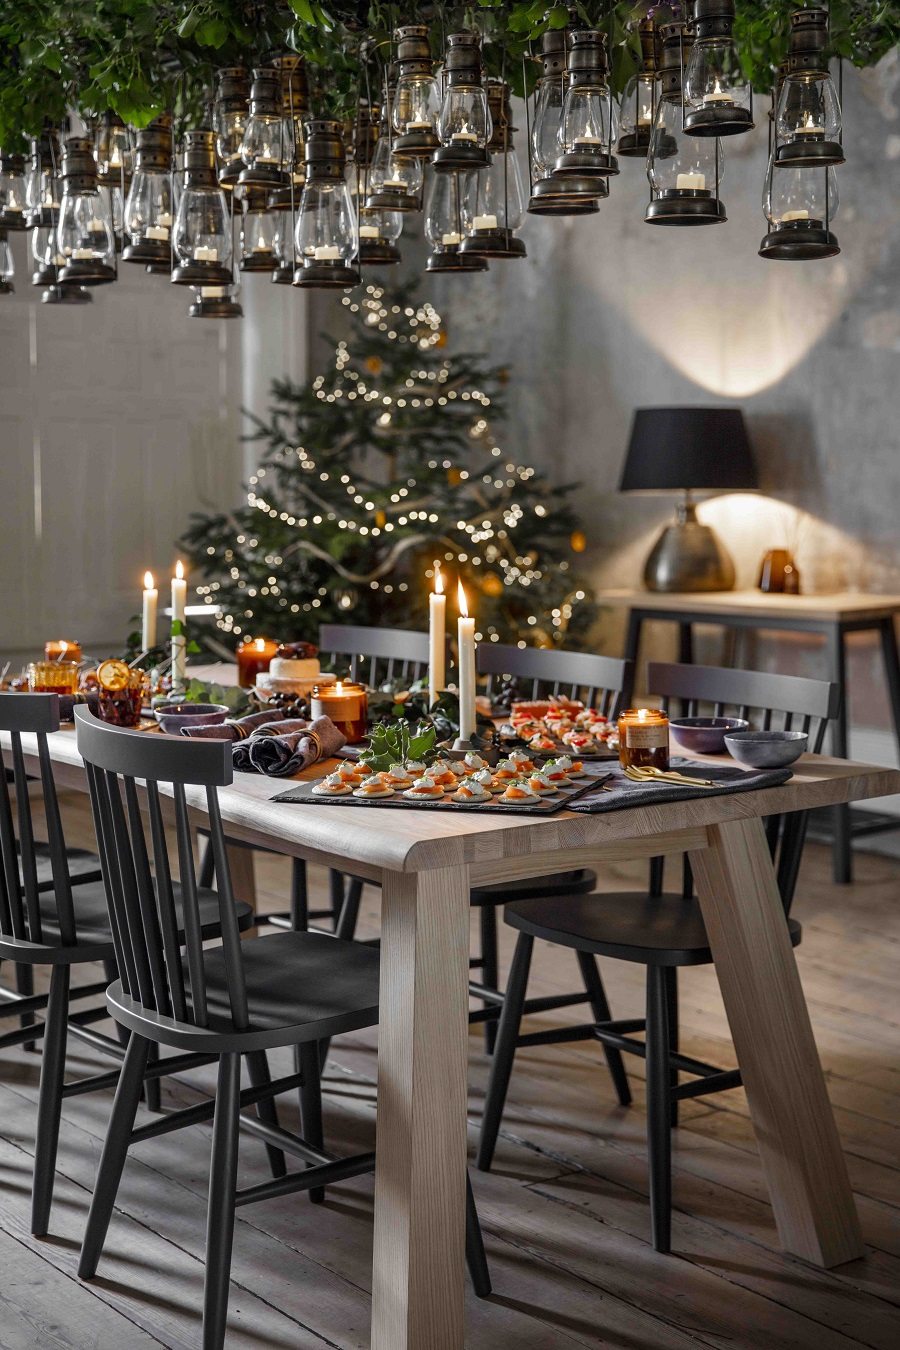 Lift the Christmas table decorations to a new level